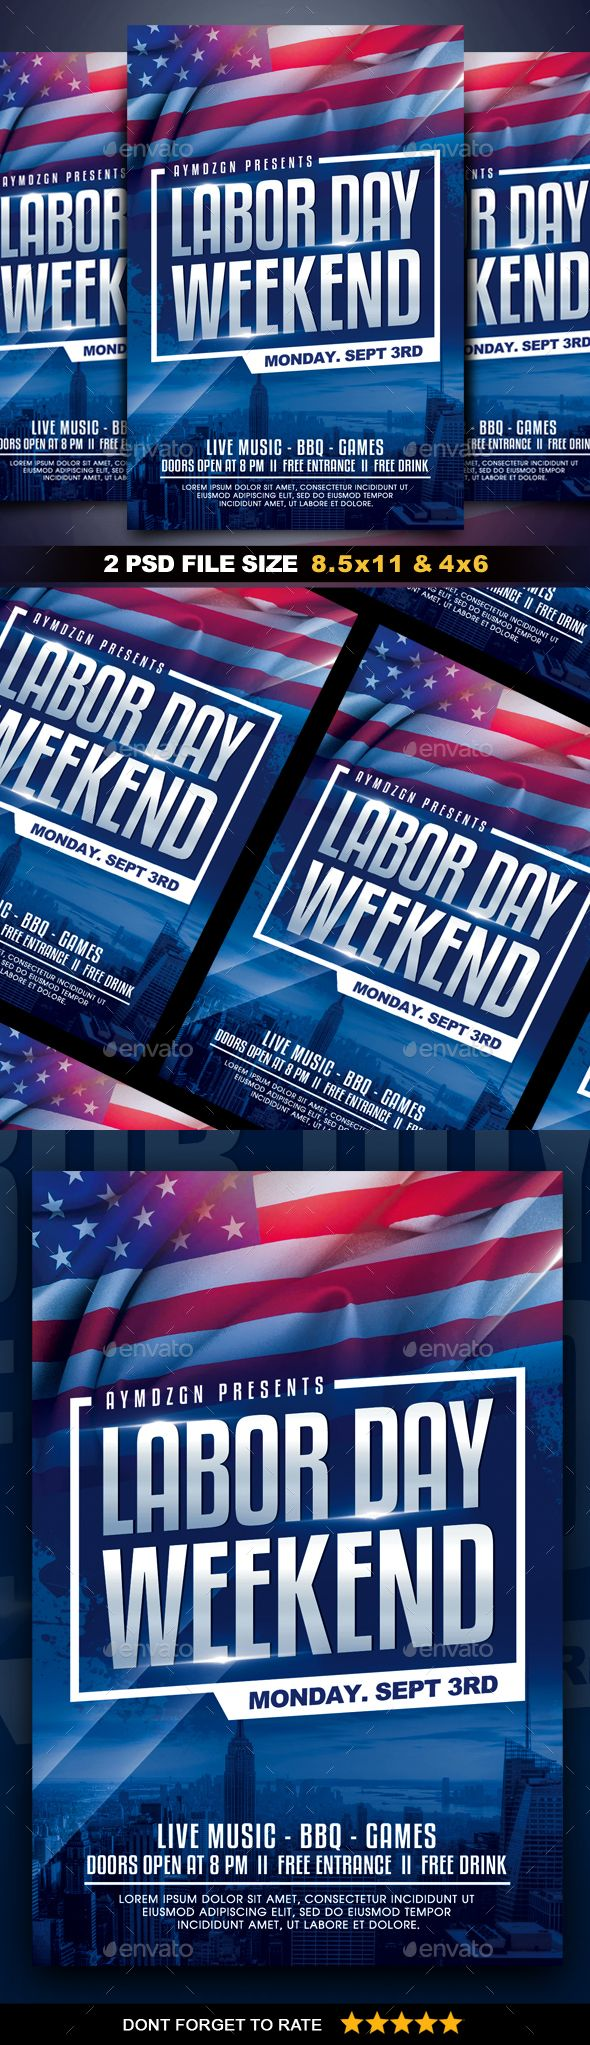 Labor Day Flyer Template Free Jpg Psd Template Net Flyer Template Flyer Halloween Flyer